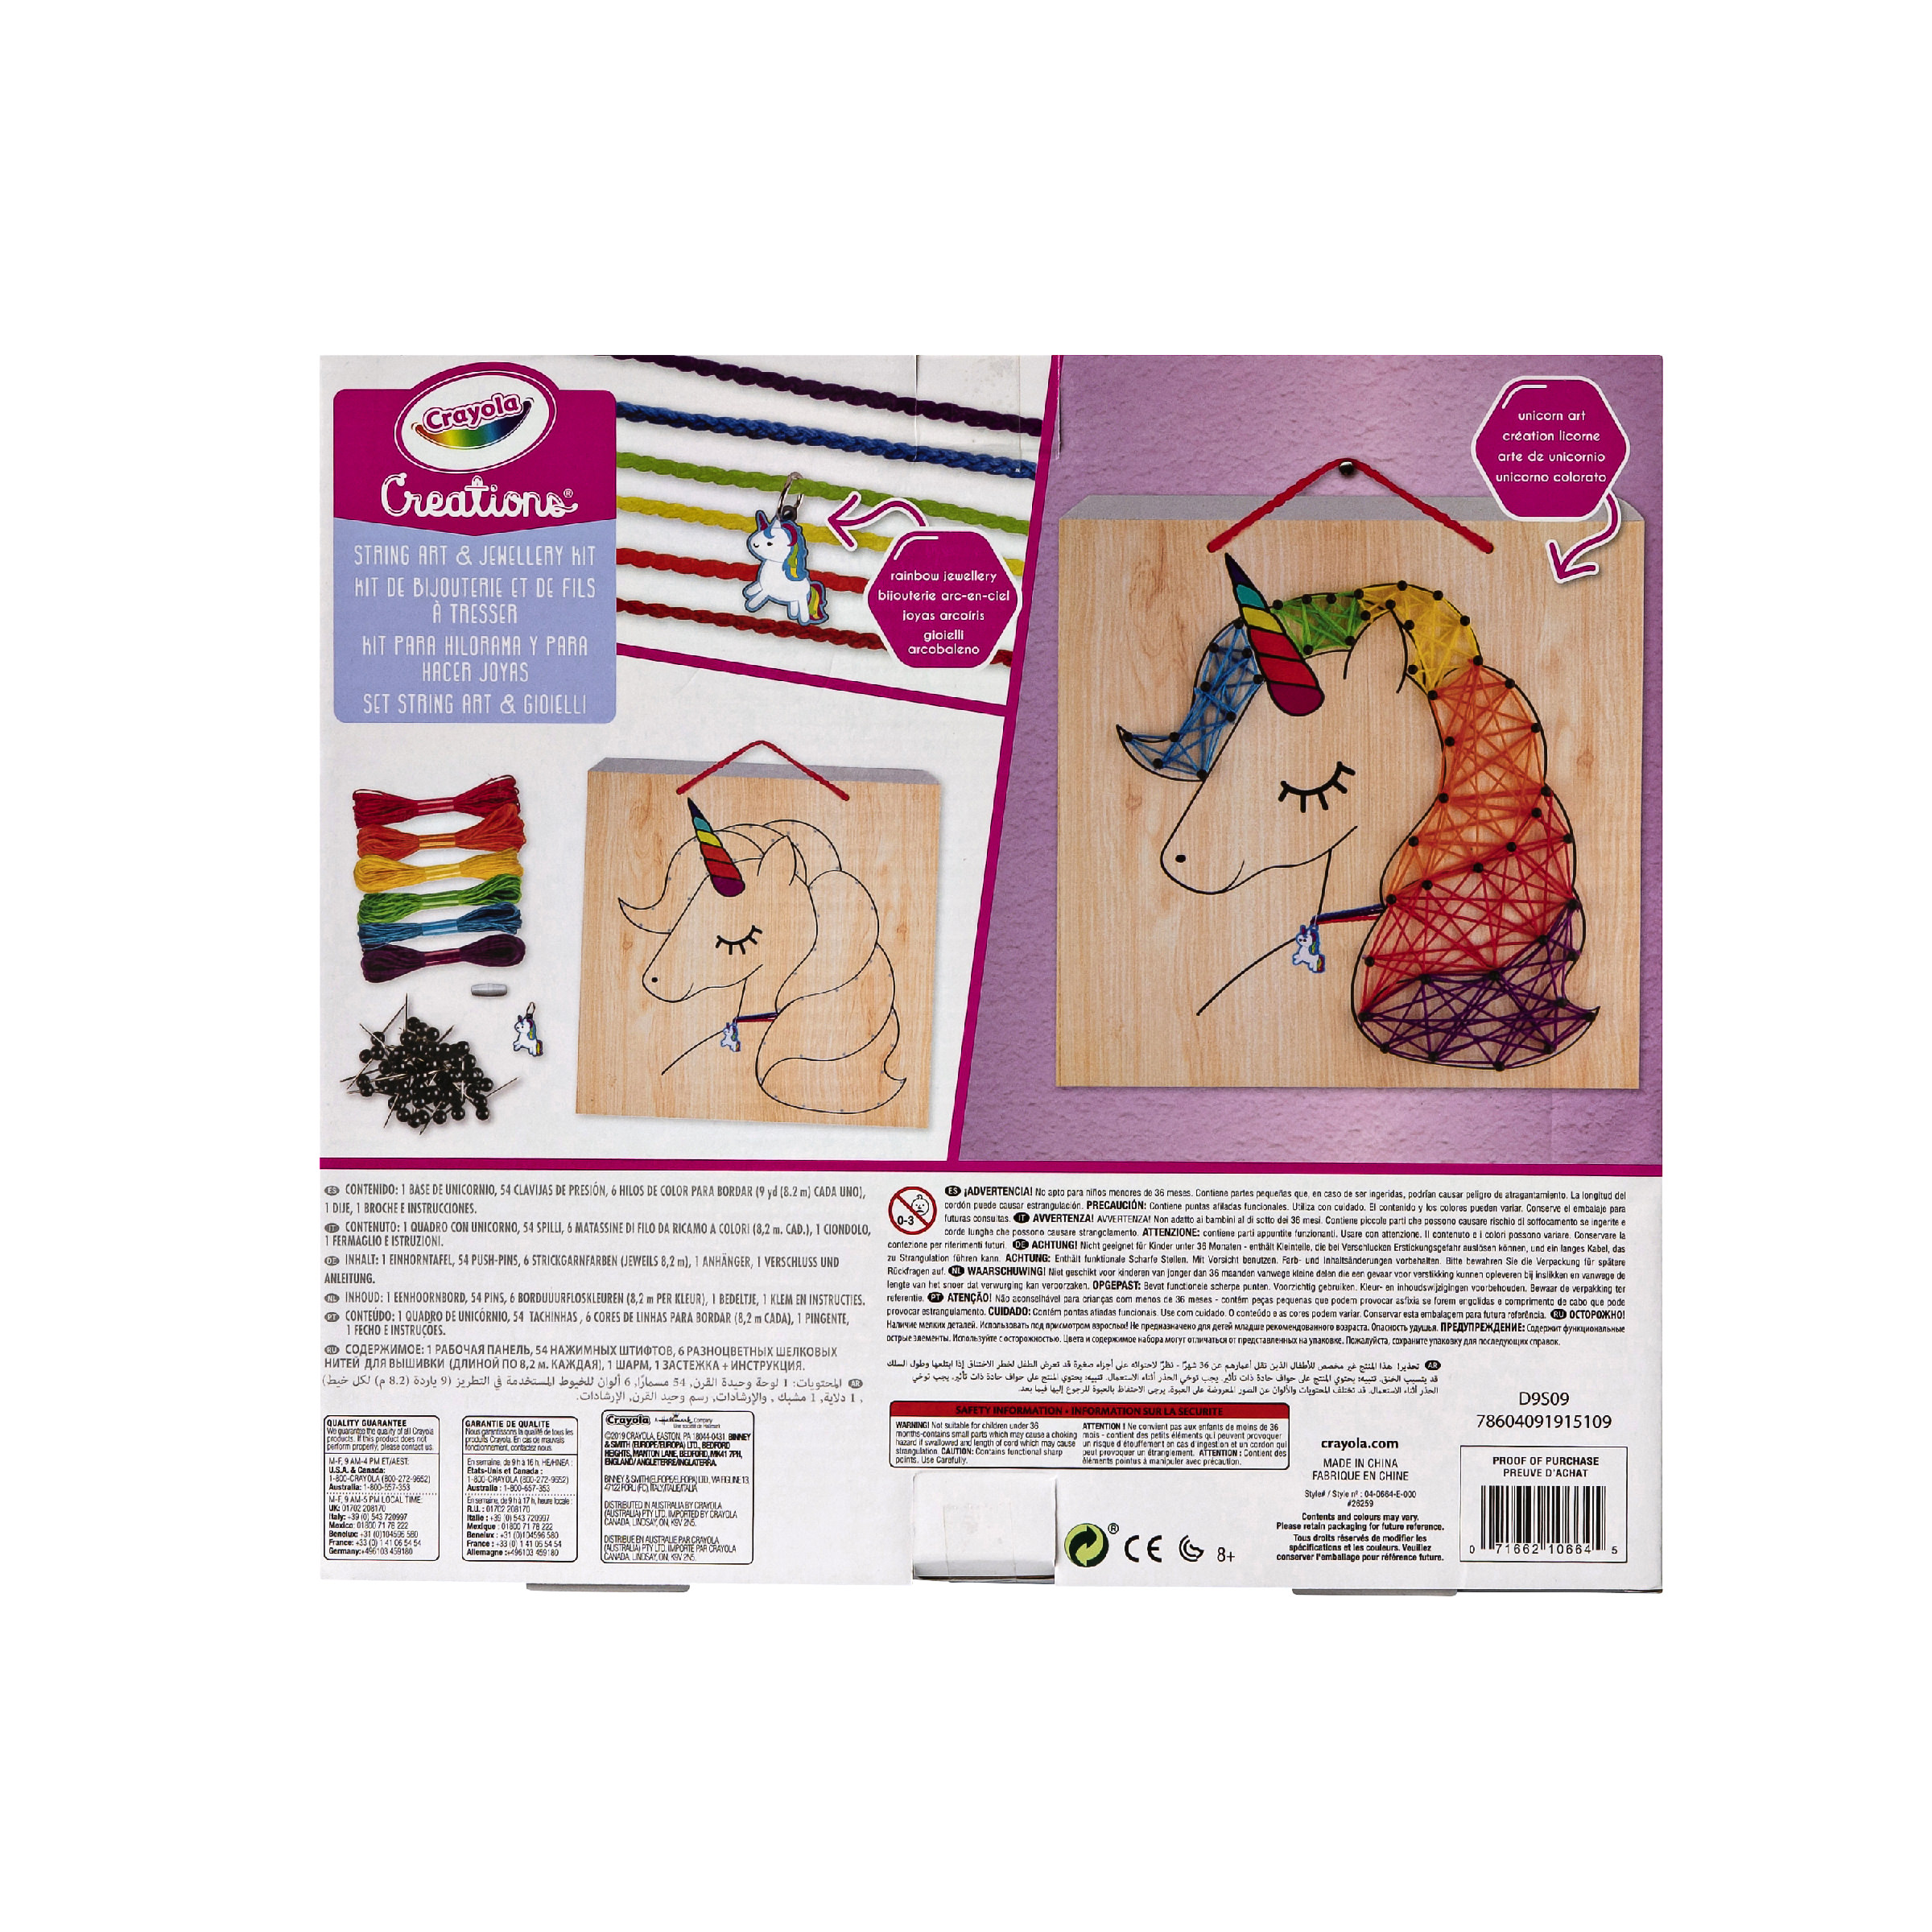 Crayola Creations String Art And Jewellery Kit At Toys R Us